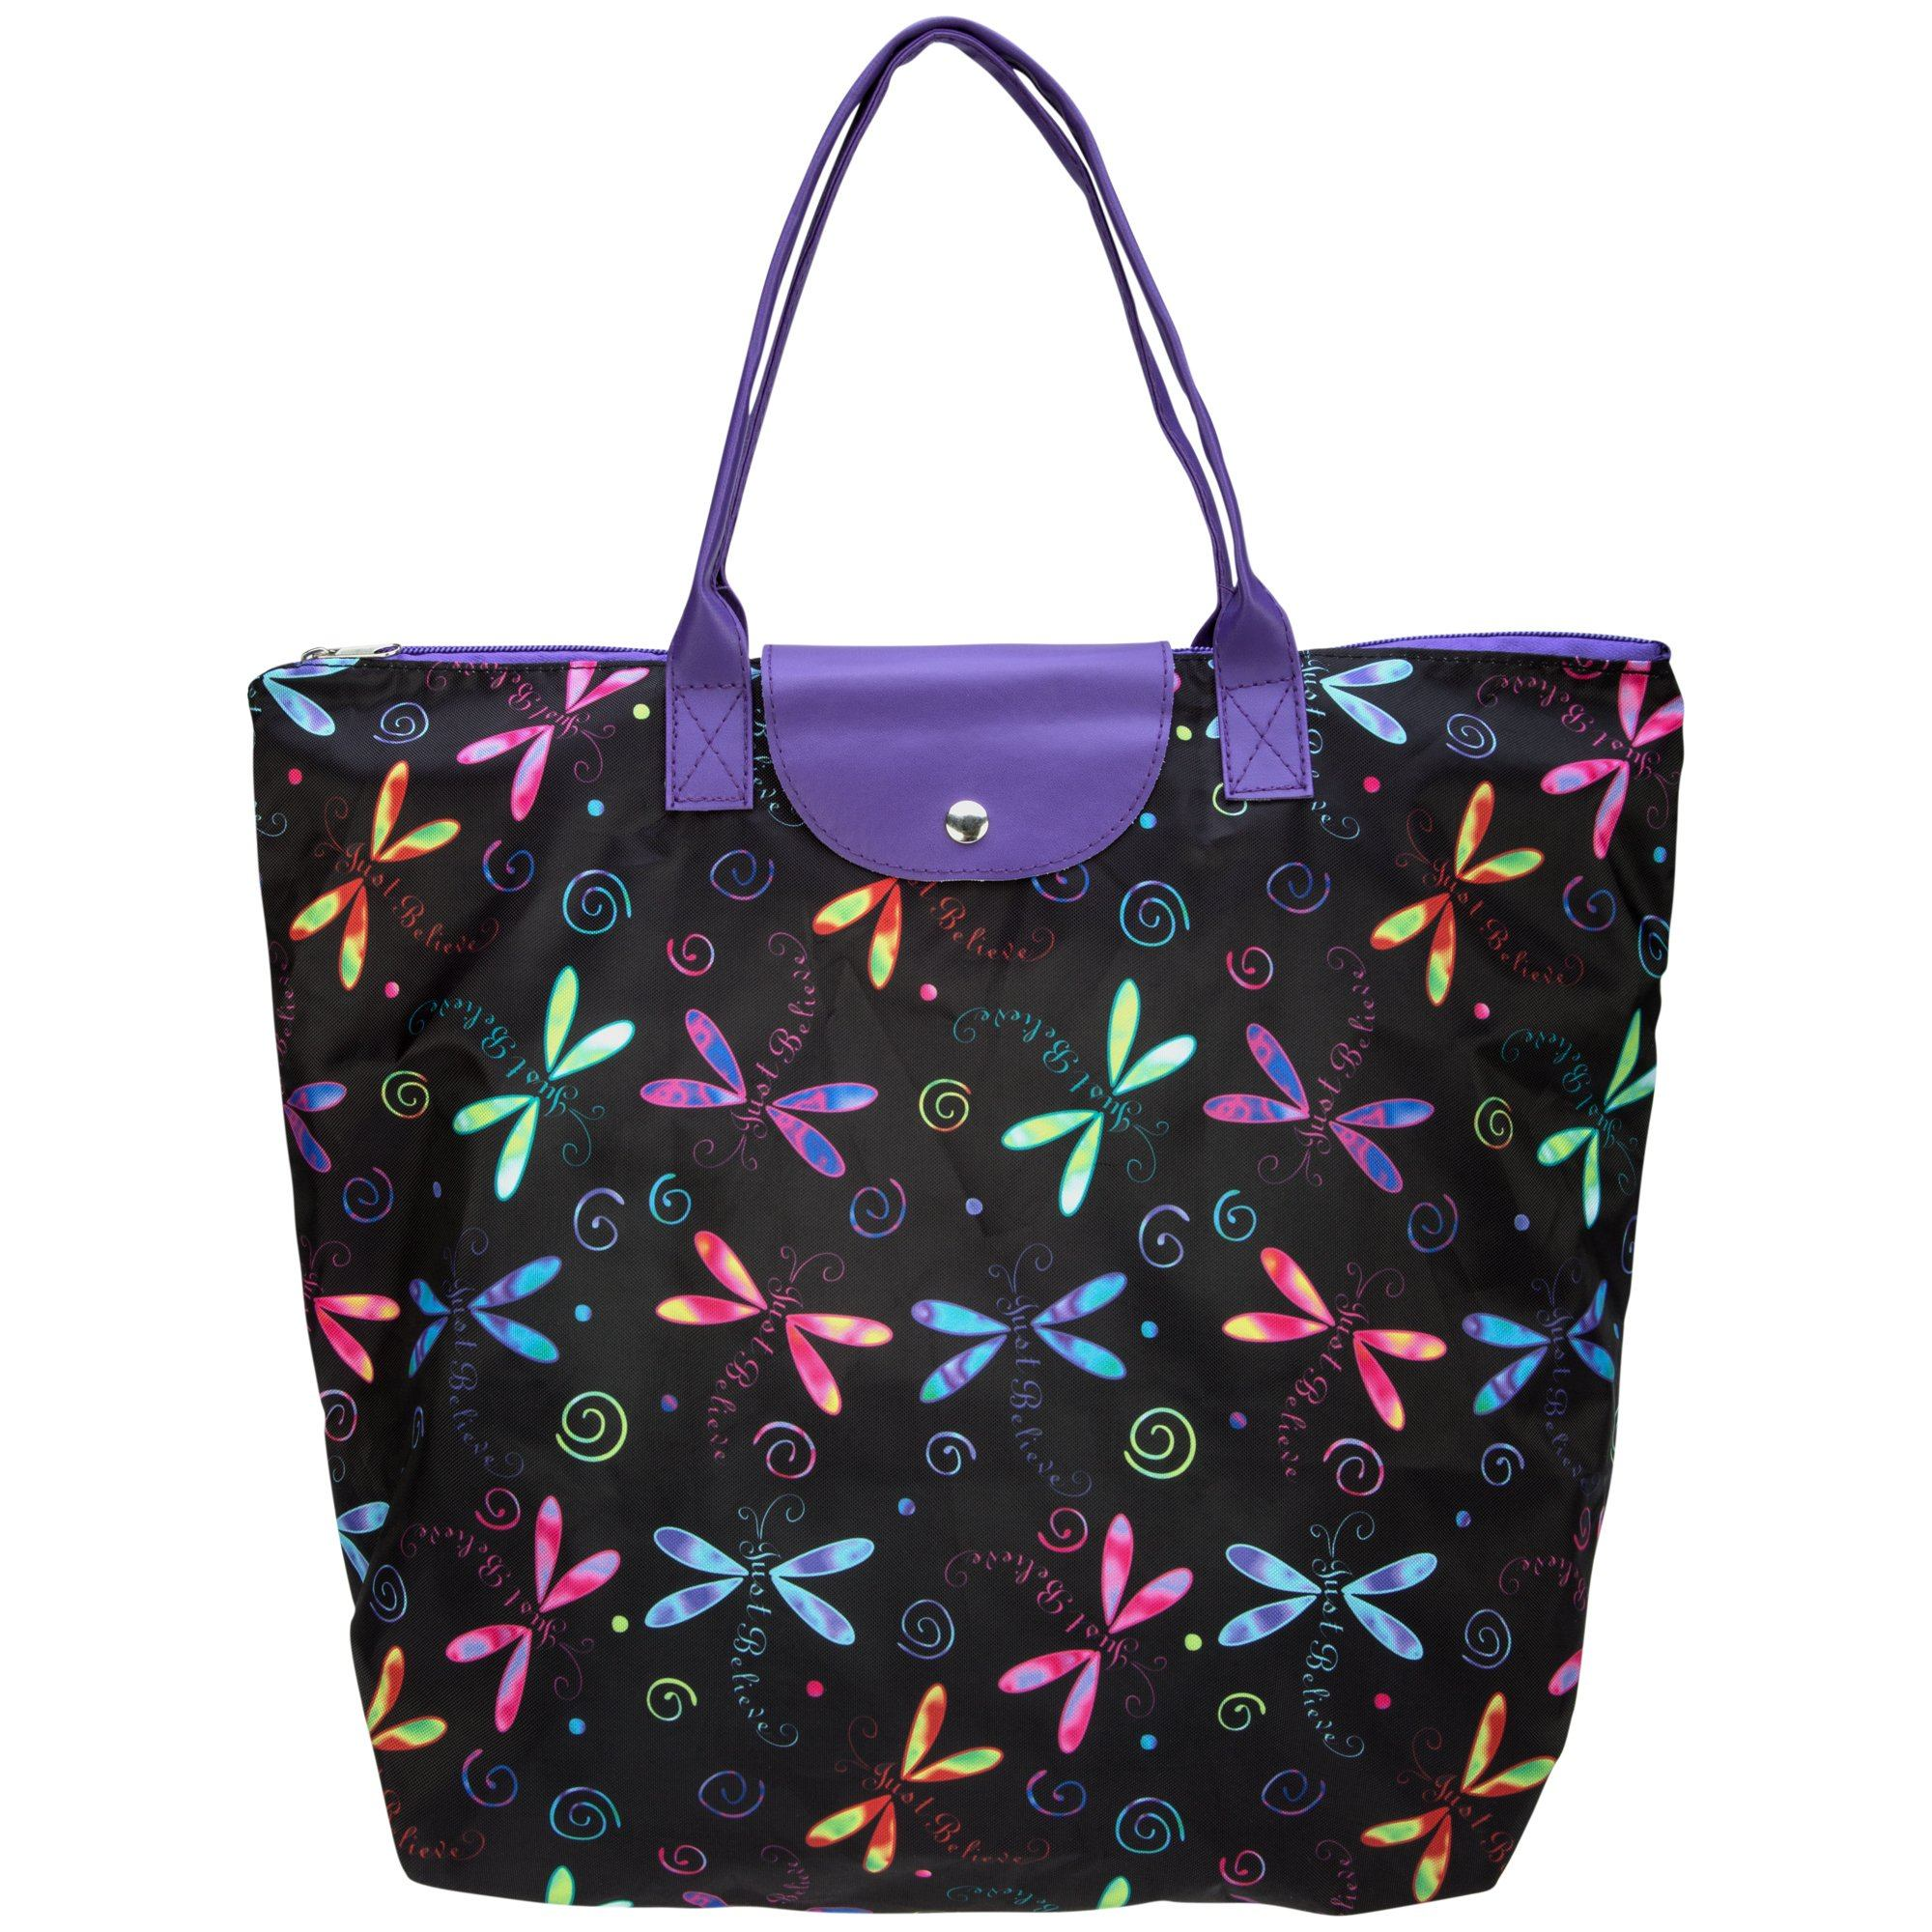 Just Believe Dragonfly Fold-up Tote Bag